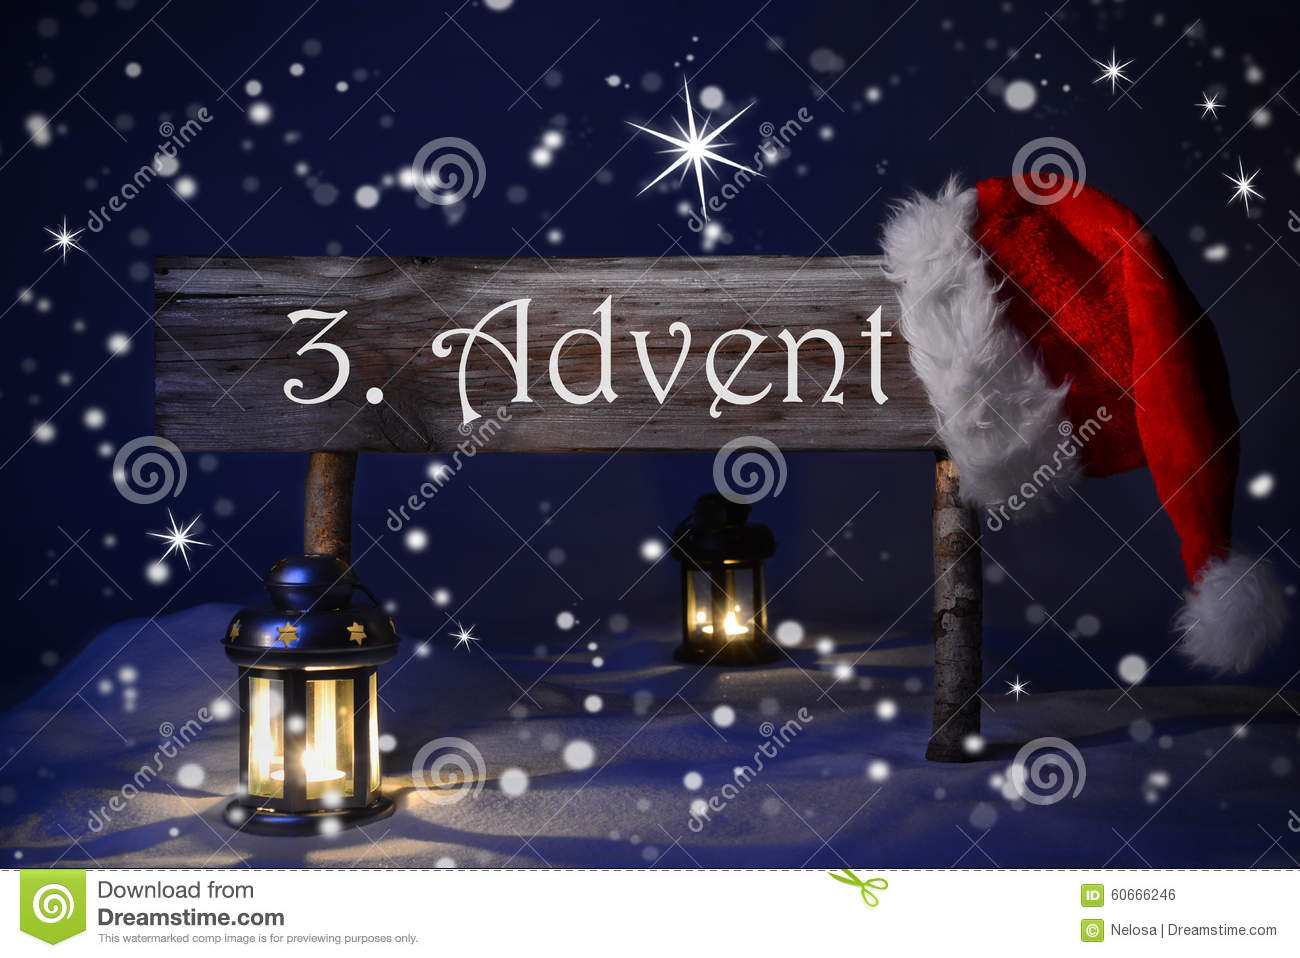 sign candlelight santa hat 3 advent means christmas time. Black Bedroom Furniture Sets. Home Design Ideas